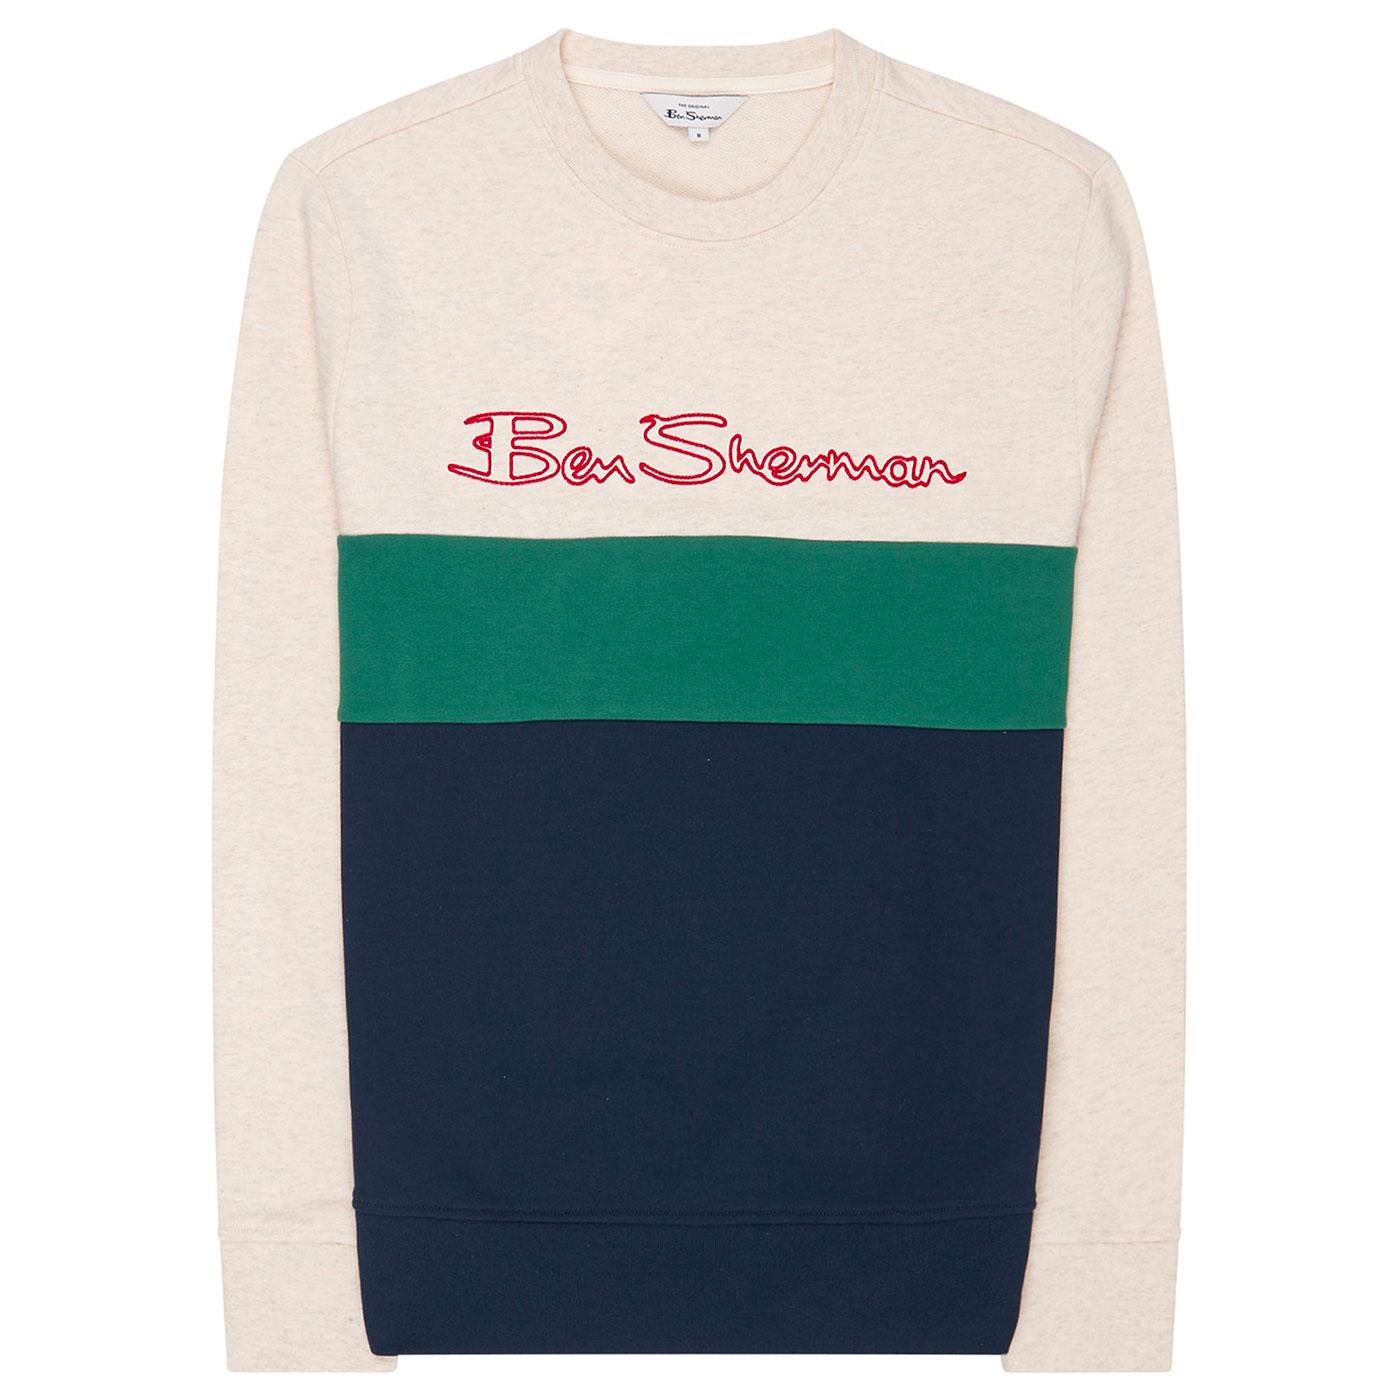 BEN SHERMAN Men's Retro Sports Logo Sweatshirt